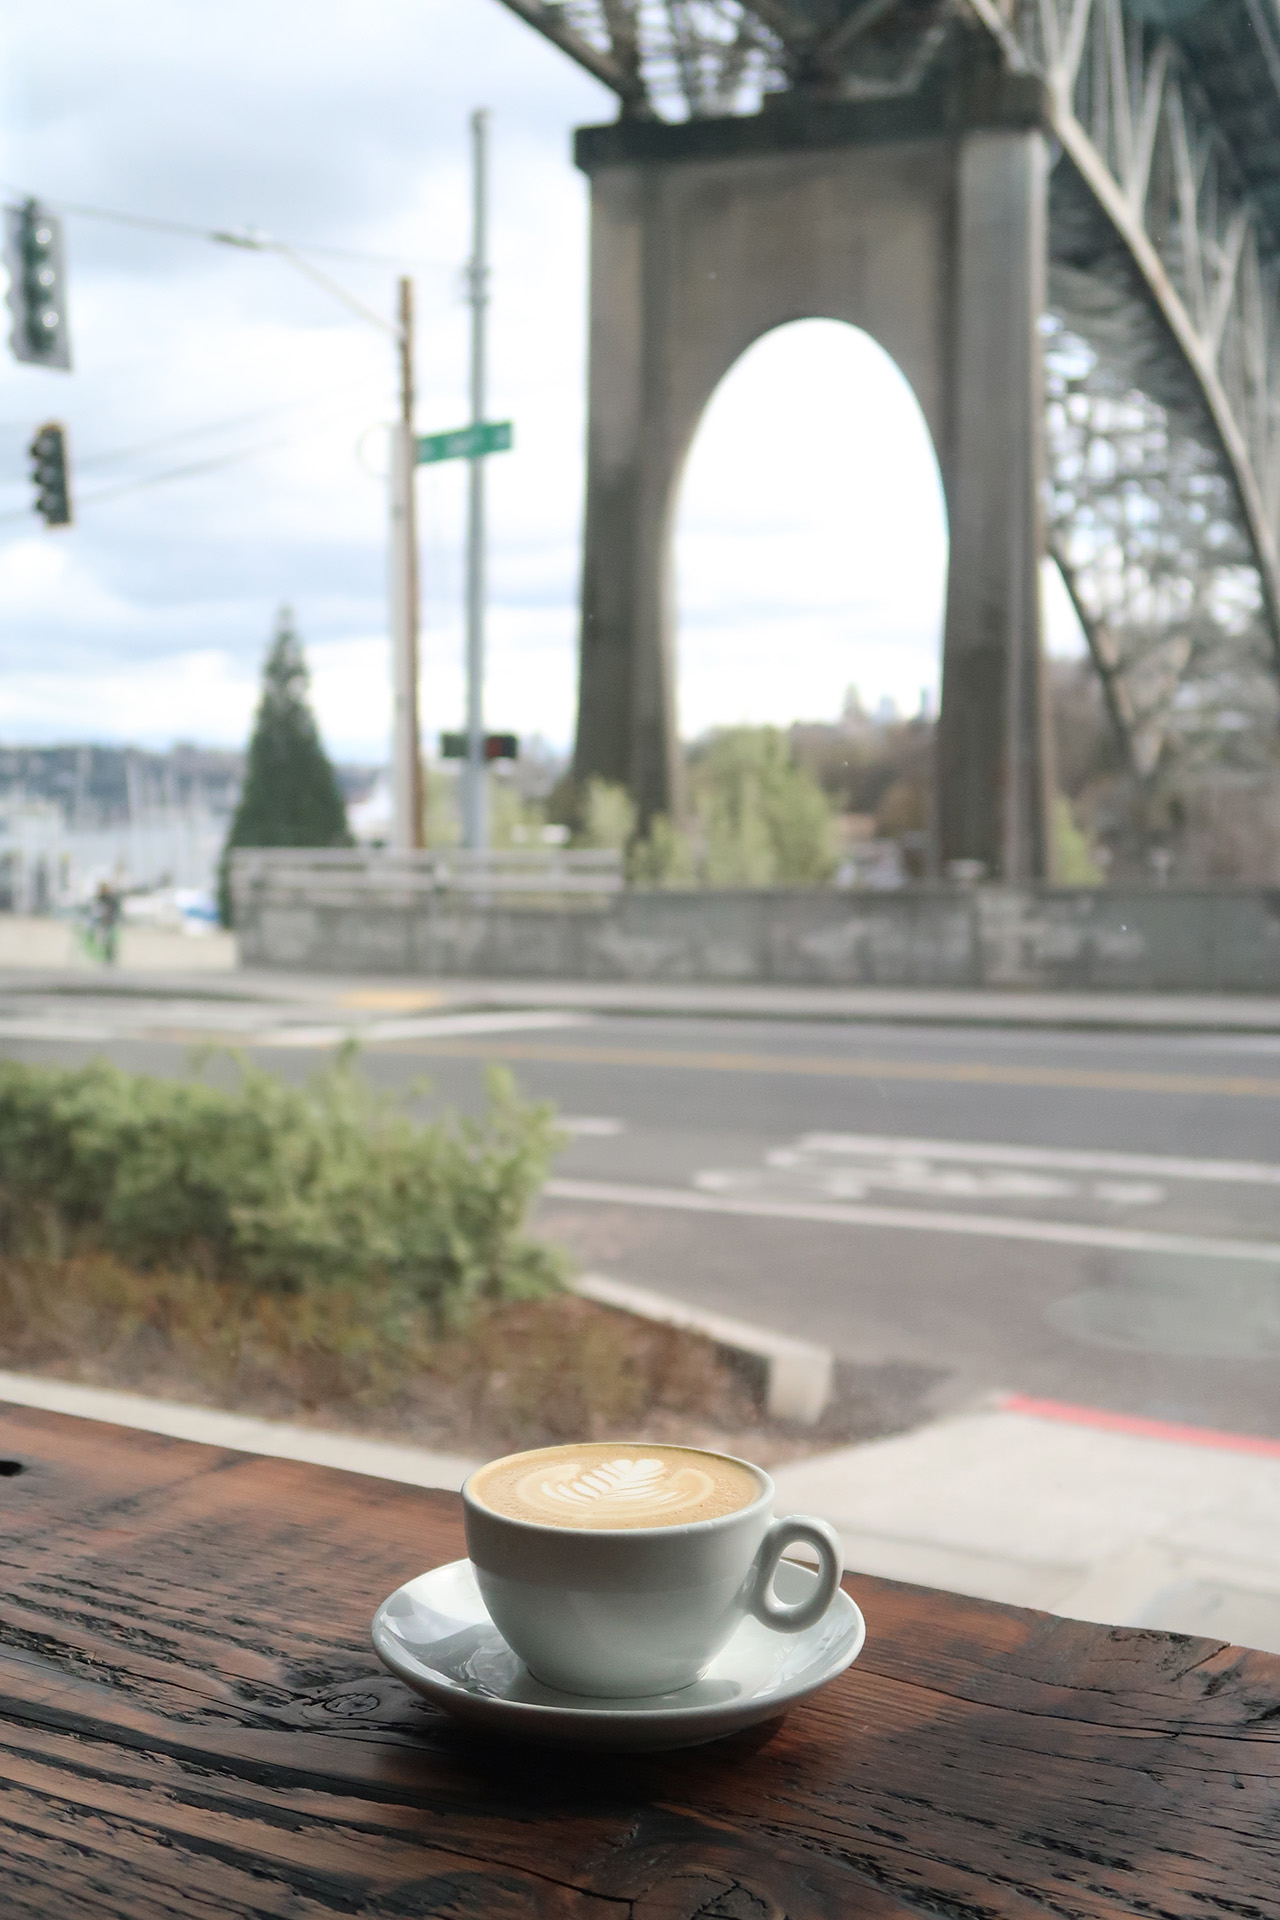 Picturesque view of the Aurora bridge at the window seat.